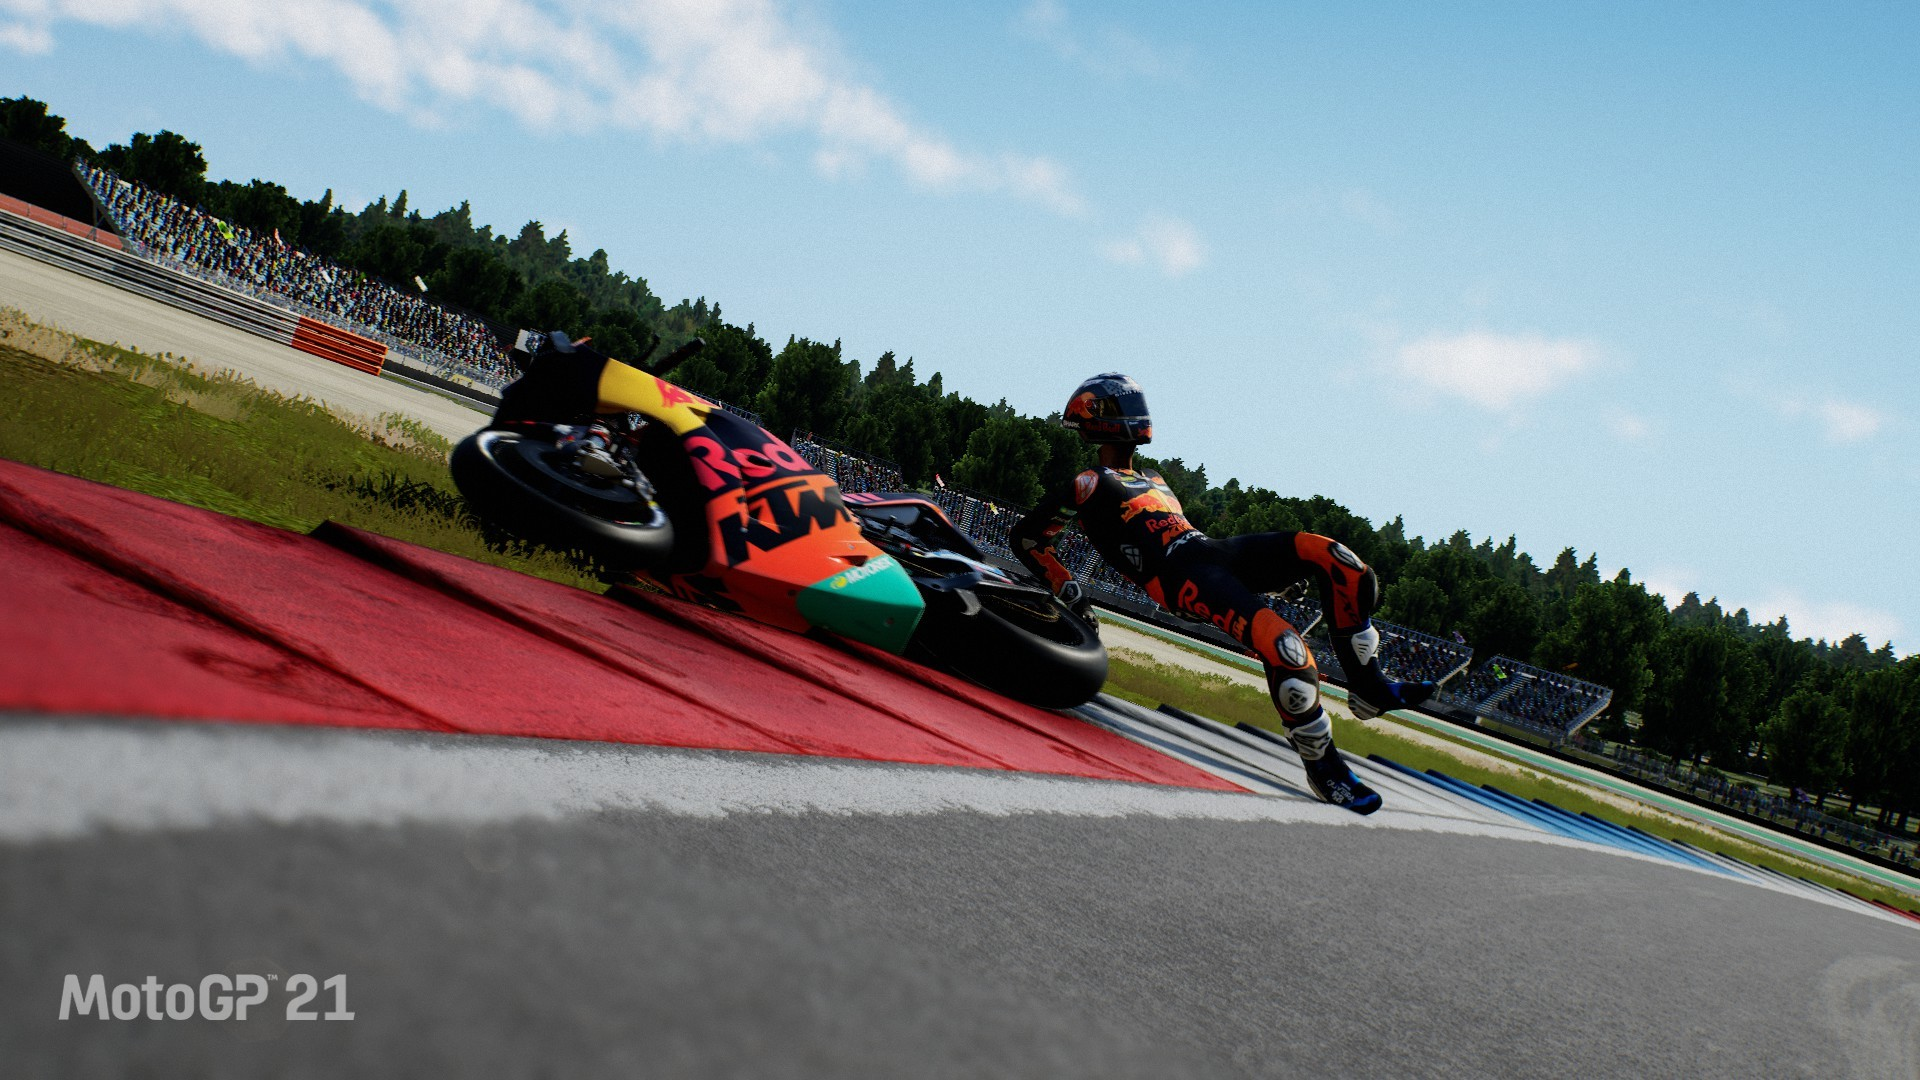 An image of a rider falling from their bike in MotoGP 21.